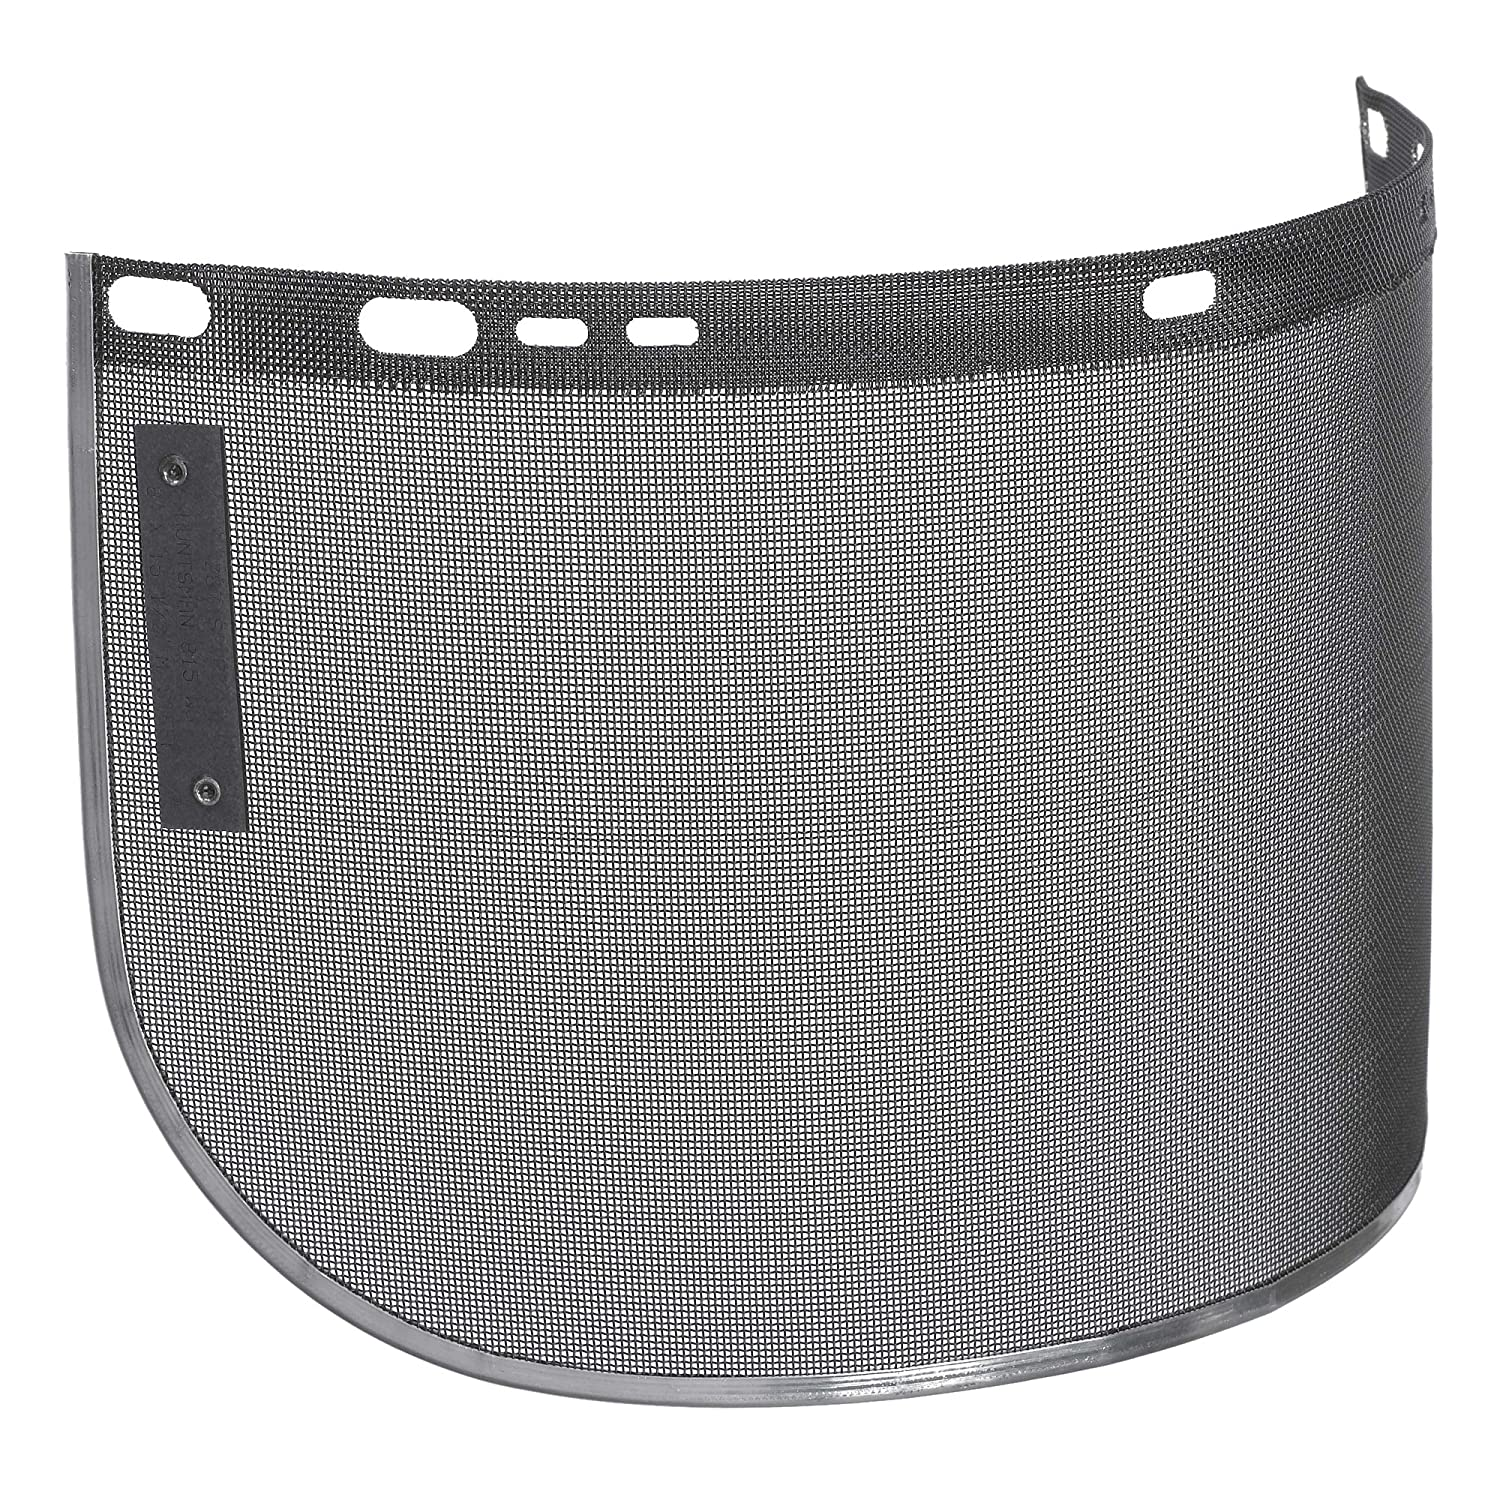 Jackson Safety Wire Mesh Face Ranking TOP14 Shield 8 15.5 Window In. Oakland Mall x